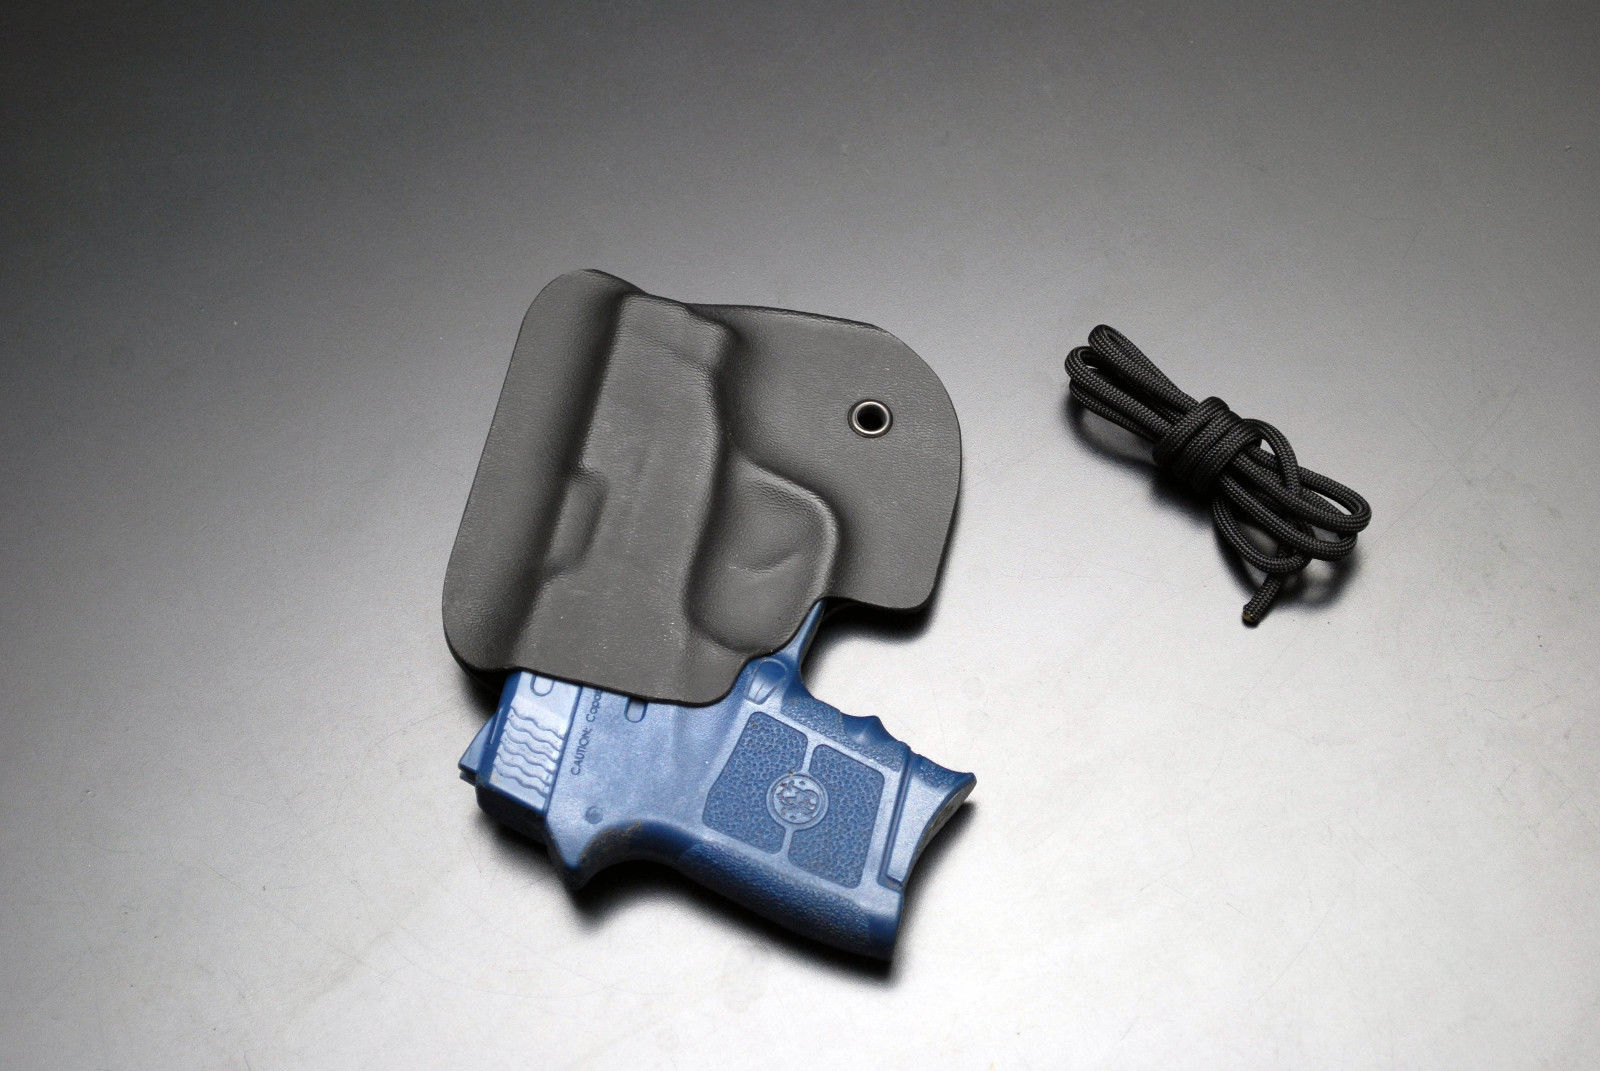 M&P Bodyguard 380 Smith and Wesson Kydex and 50 similar items